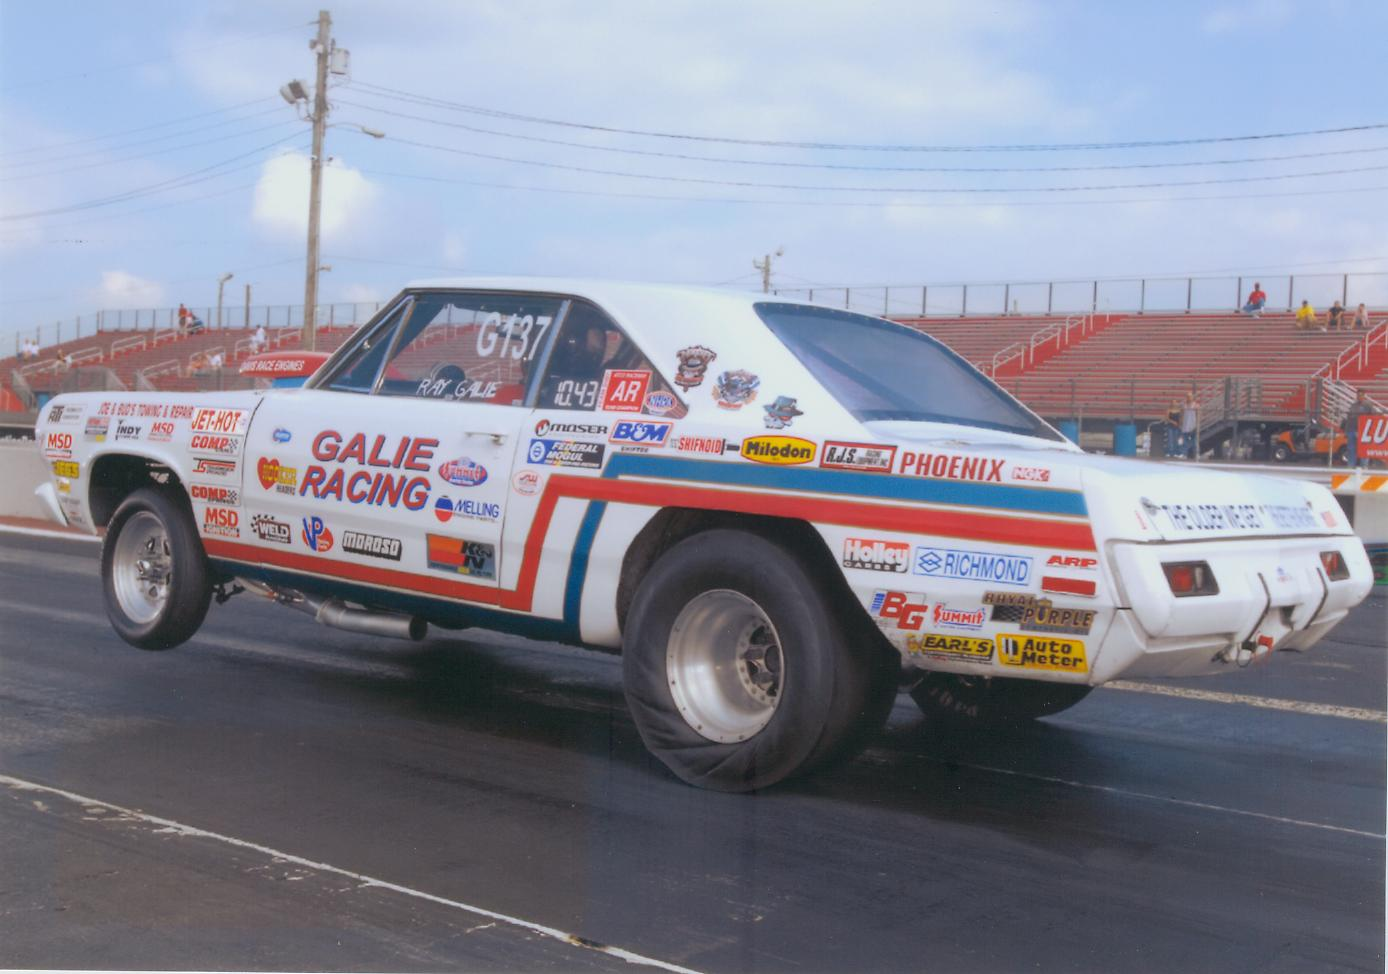 Drag Racing In The 70s - Back When It Was Still Fun